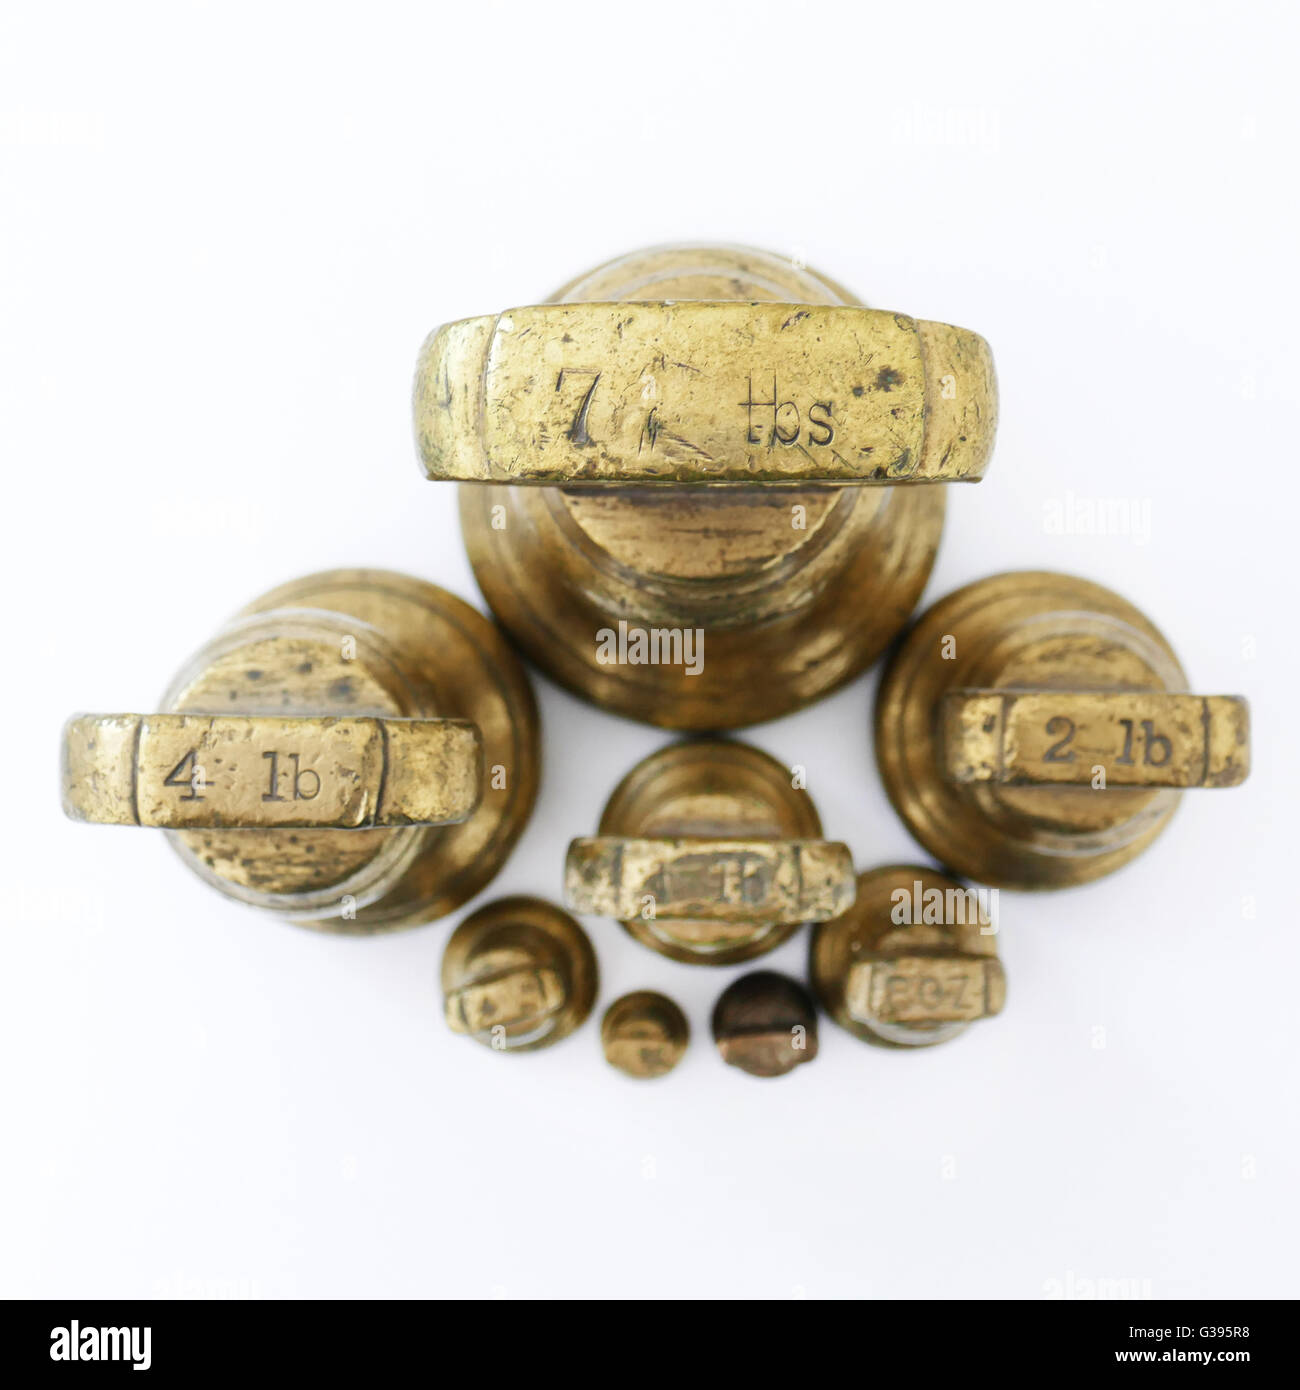 Old fashioned Imperial brass weights which were used on traditional scales,ranging from 4Lbs down to 1oz, pre metric. - Stock Image